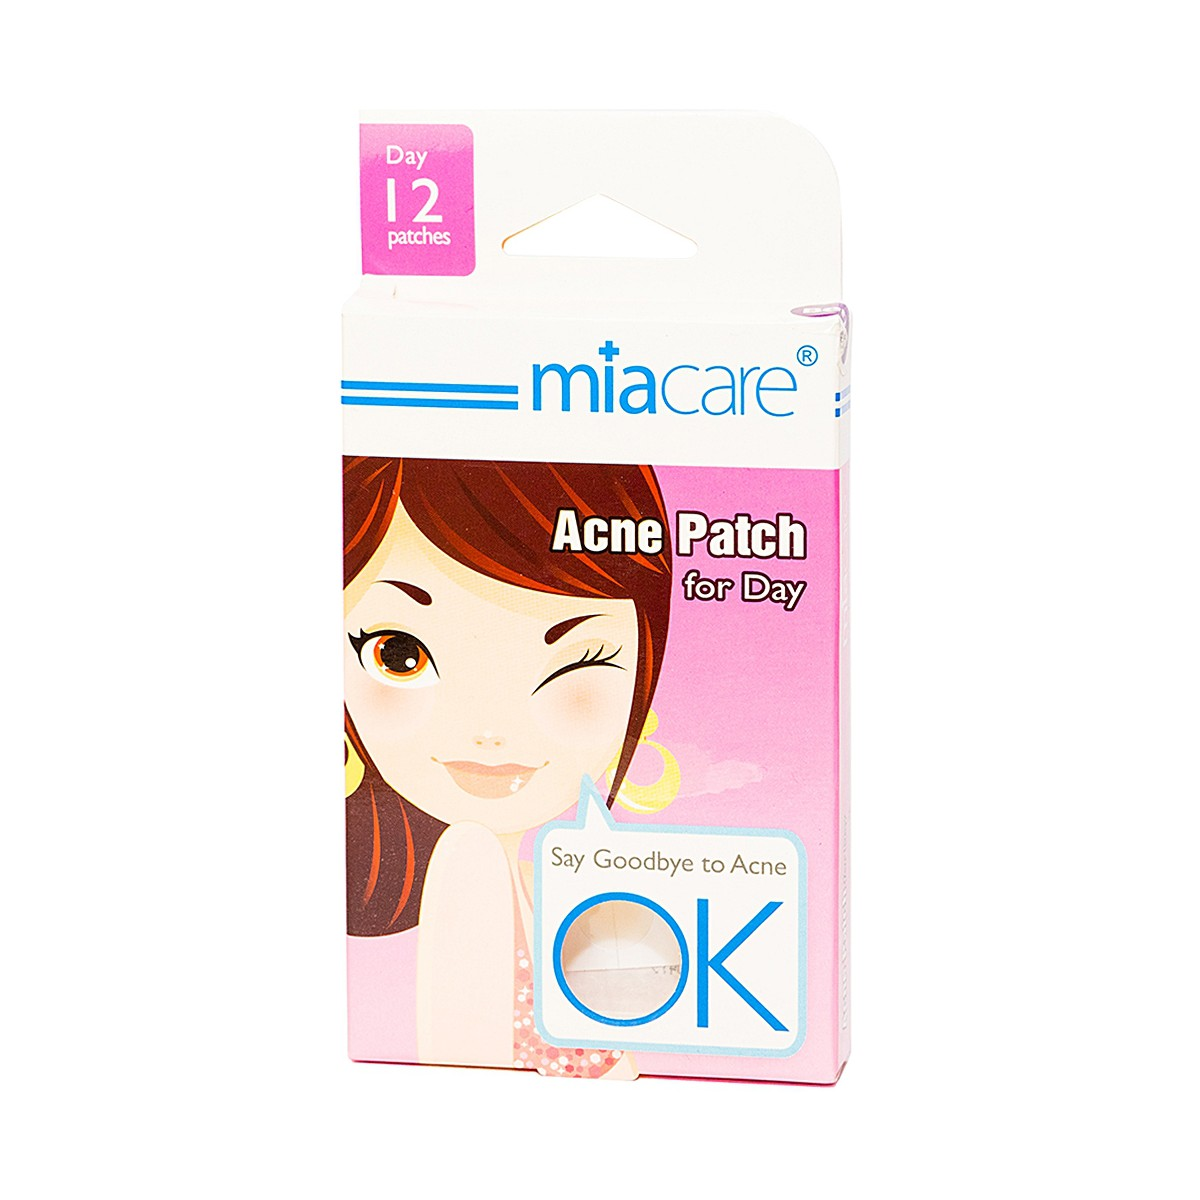 Miacare Acne Patch For Day- Miếng dán mụn